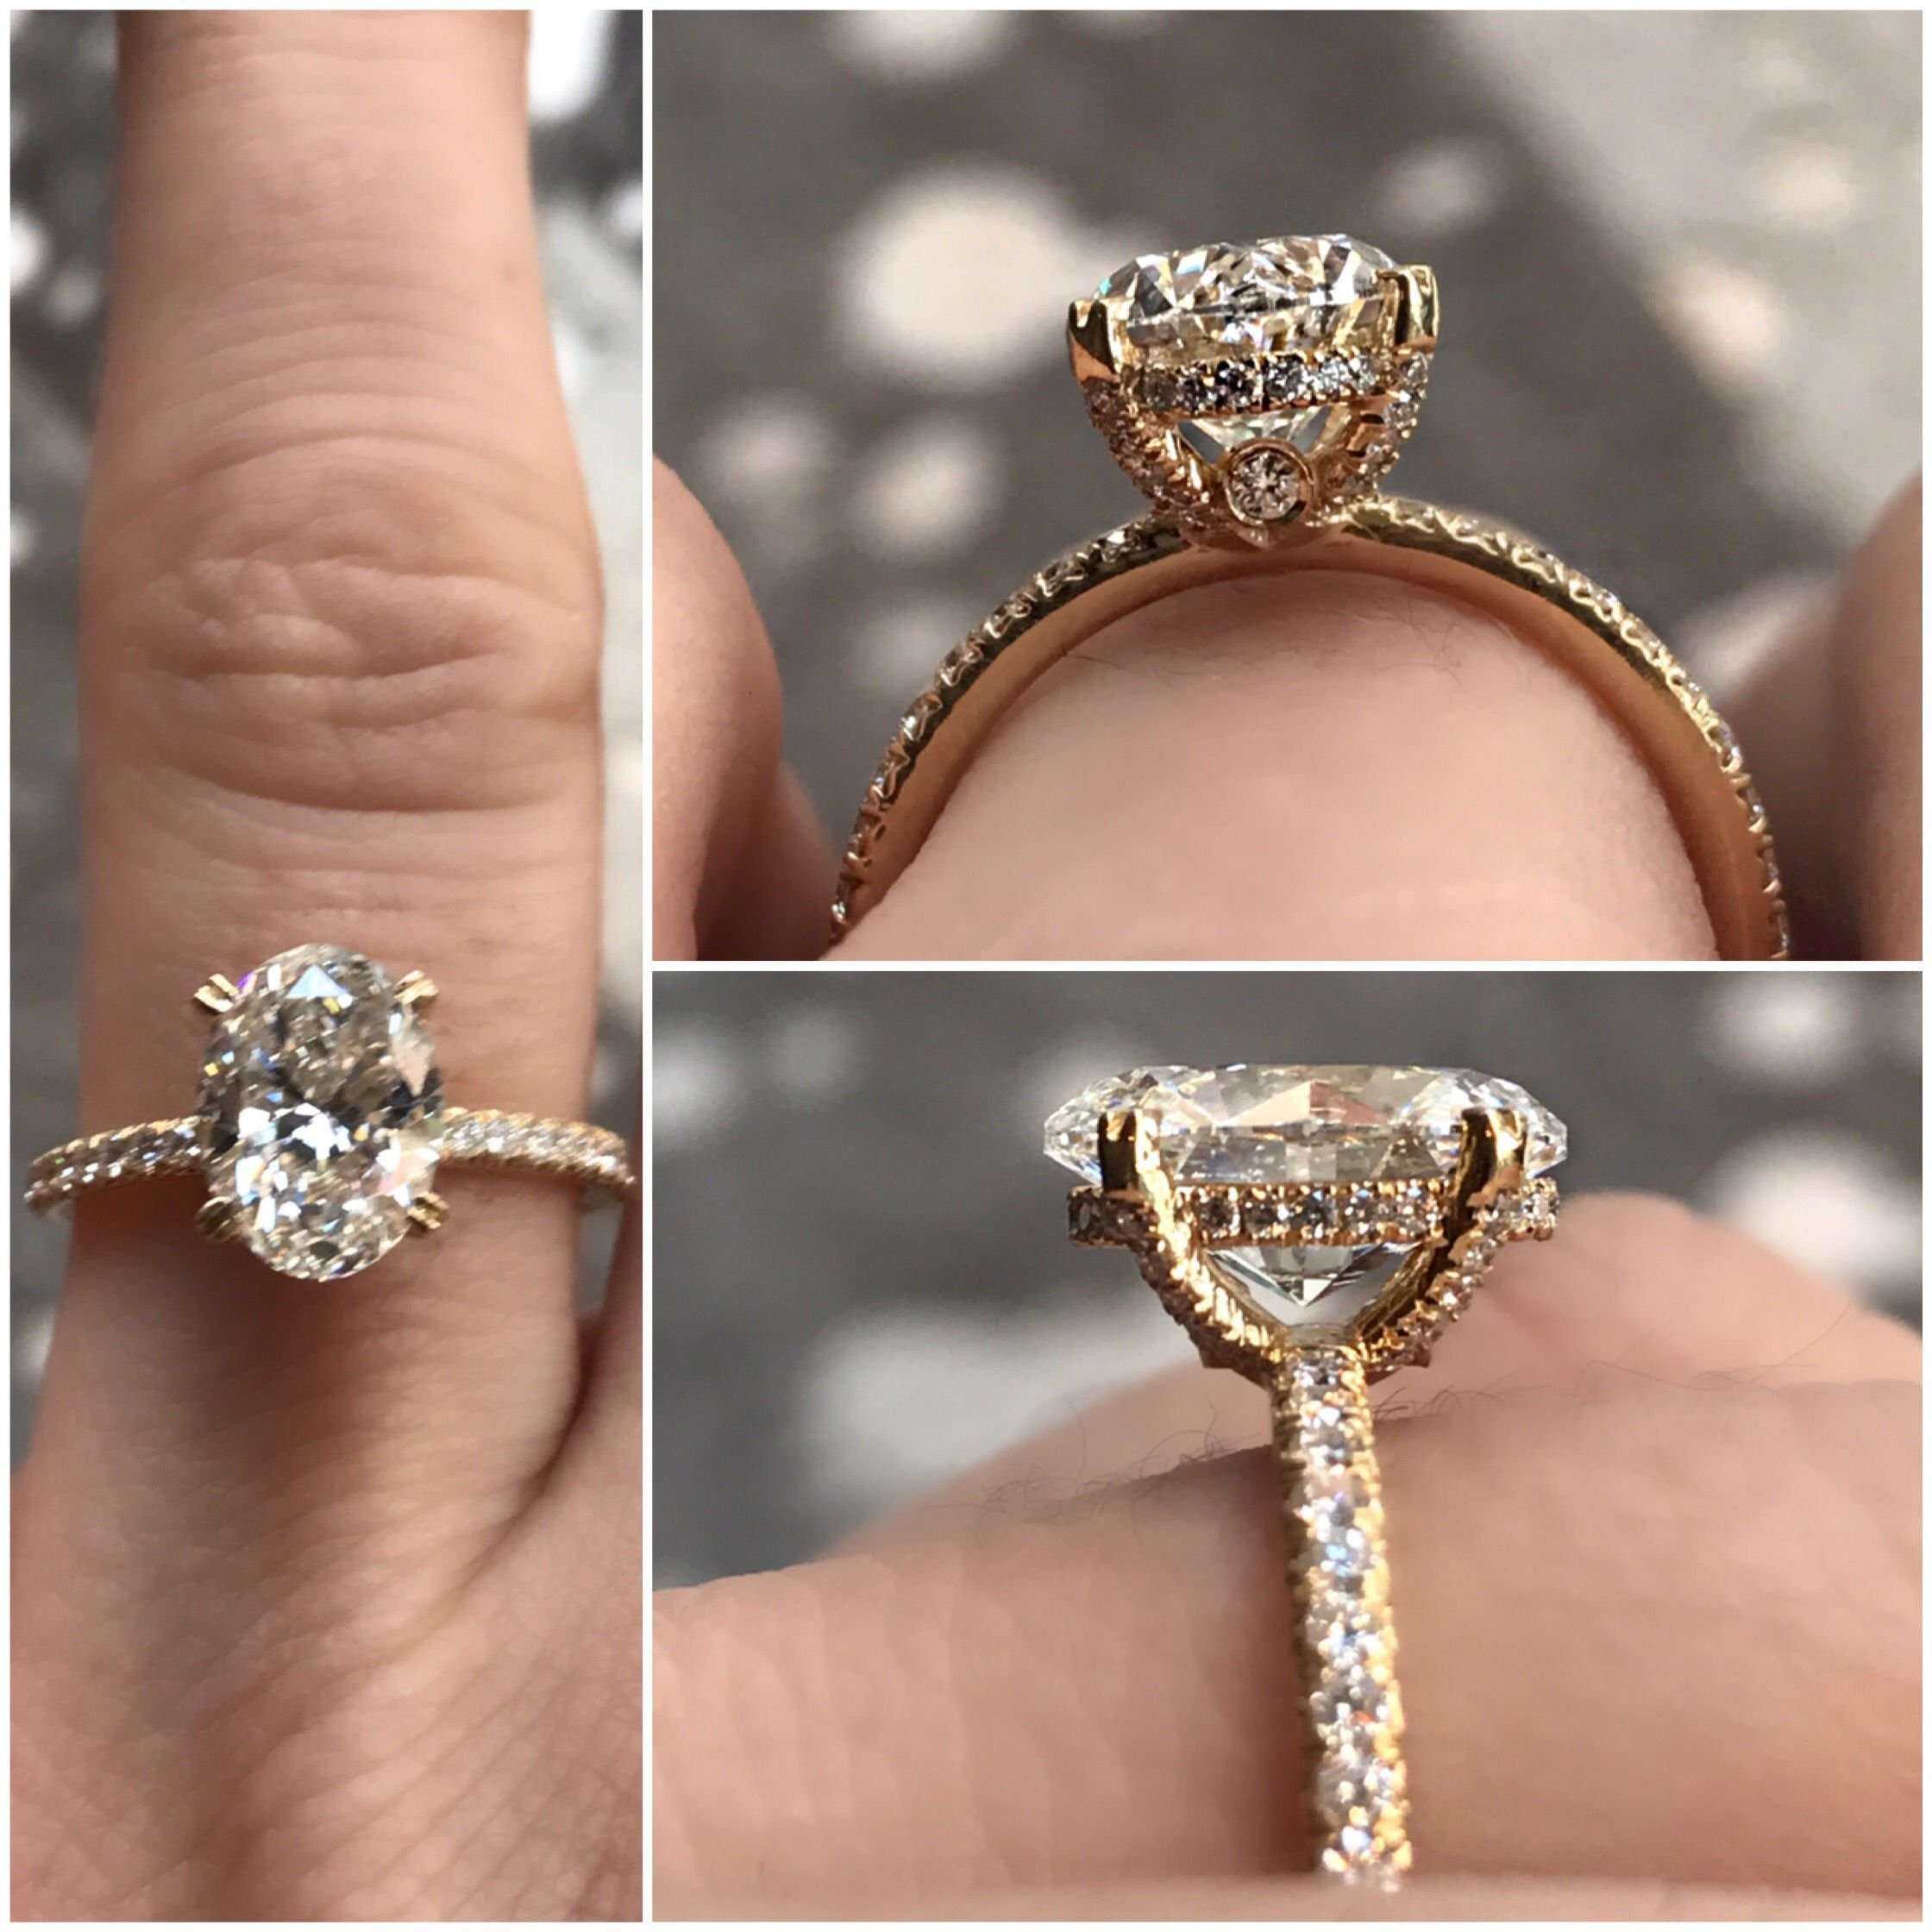 Oval diamond engagement ring Vintage inspired hand crafted made